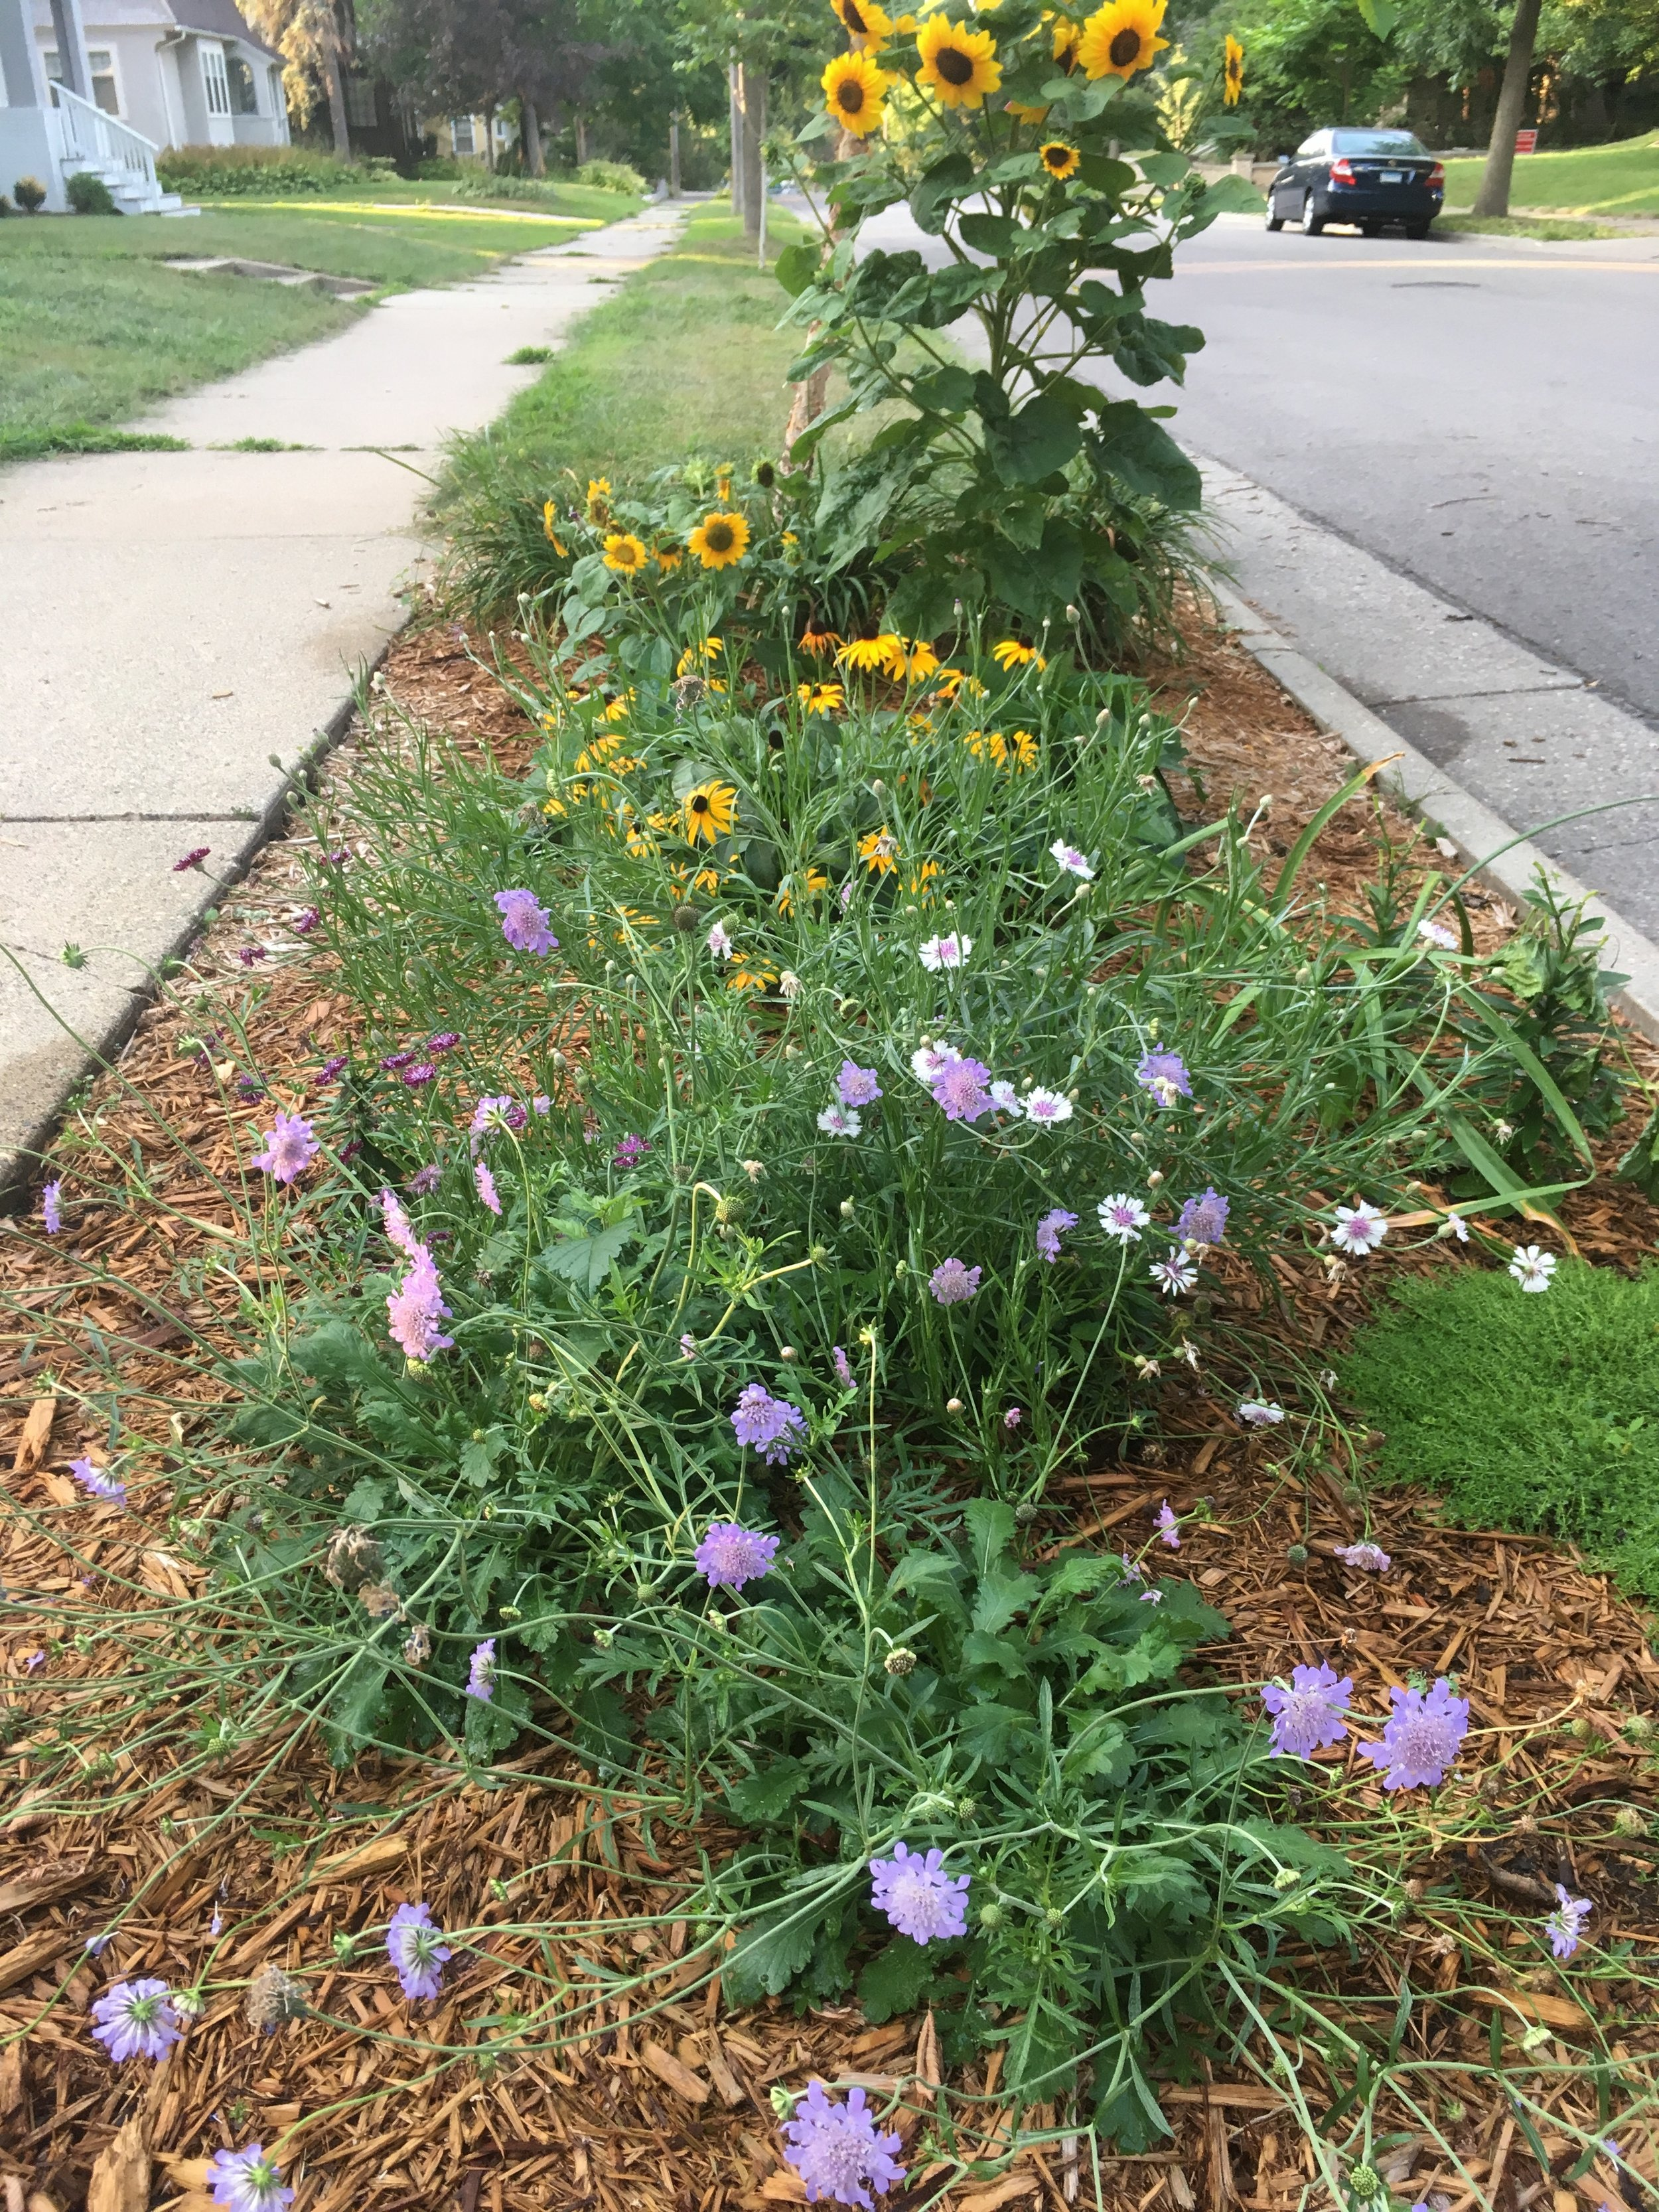 The Hell Strip - And finally, the boulevard garden is doing well.  Annual sunflowers and bachelor buttons are temporary while the perennials take hold and spread out.